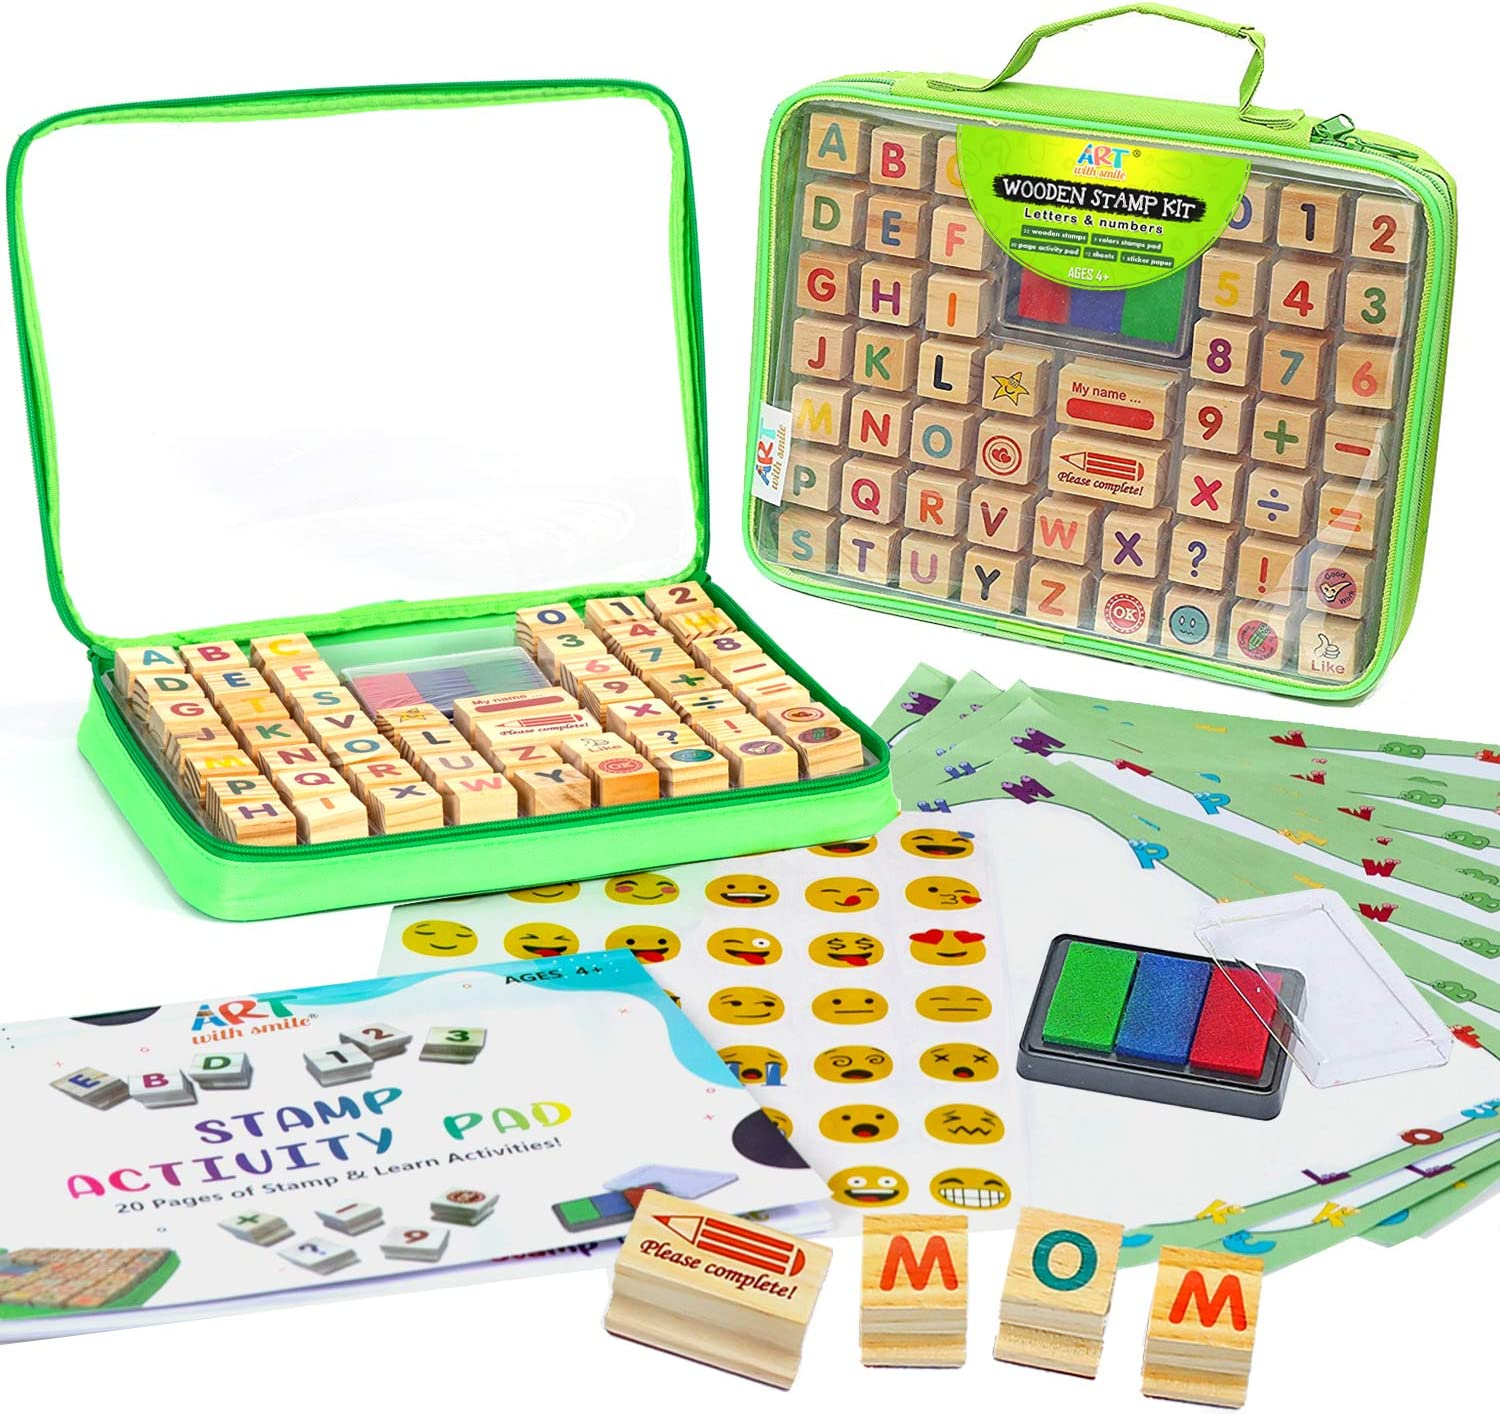 Wooden Stamp Set for Kids and Teachers with Alphabet Stamps and Carry Case 69Pcs – Letters, Numbers, Emojis, 3-Color Washable Ink Pad, Activity Book, More – ABC 123 Stamps Excellent Gift for Kid